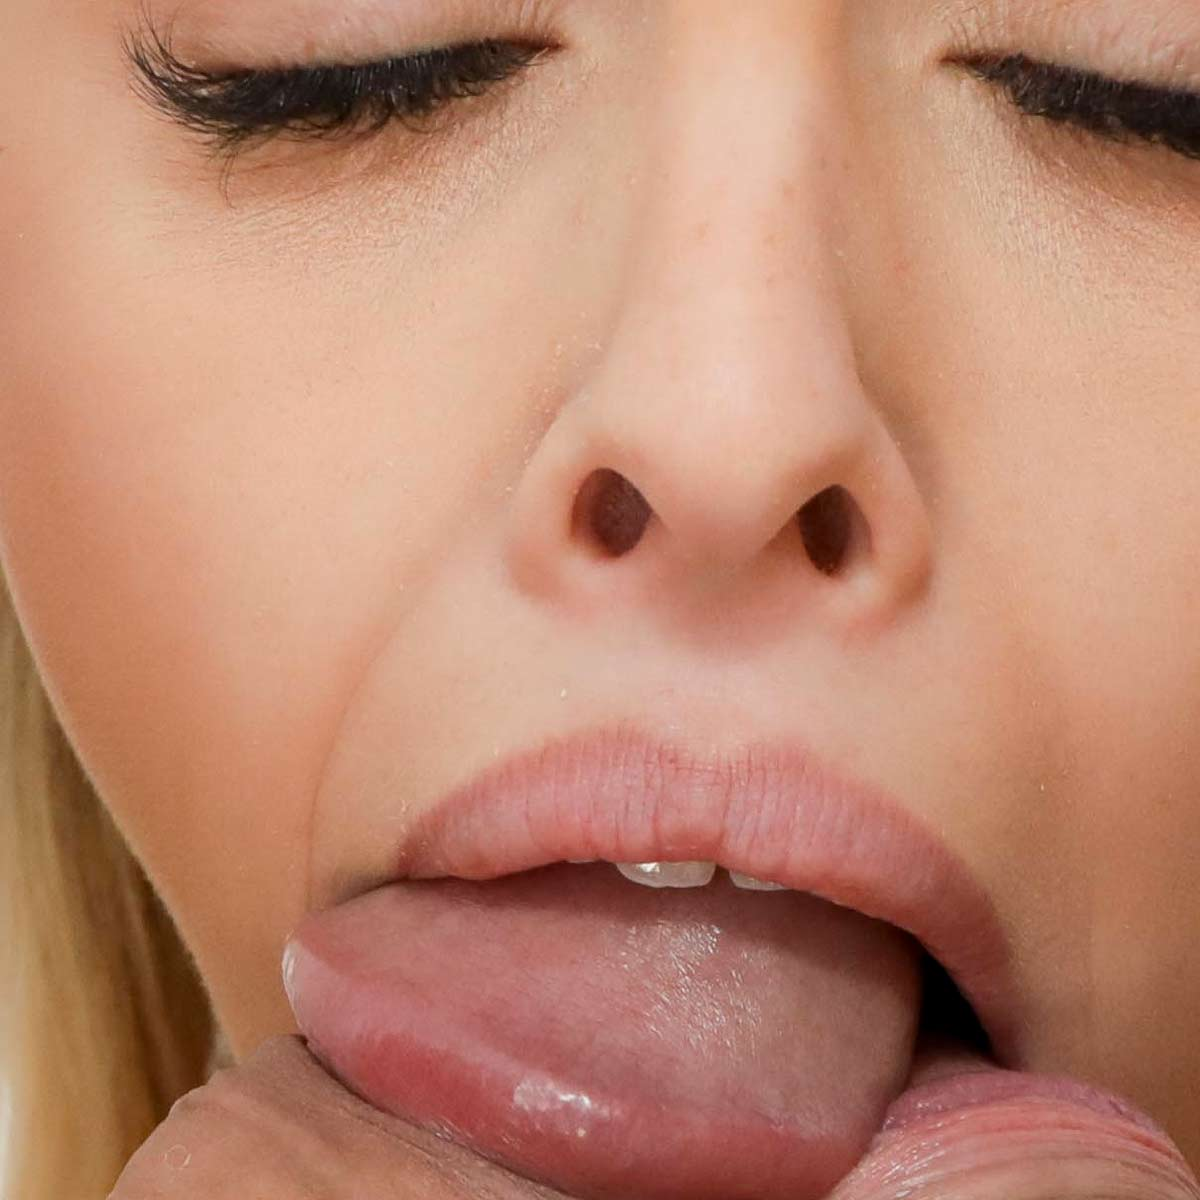 Lya Missy, nude, sucks two cocks at once. Blowjob and swallow porn from CumBuffet, Fellatio Fetish videos.